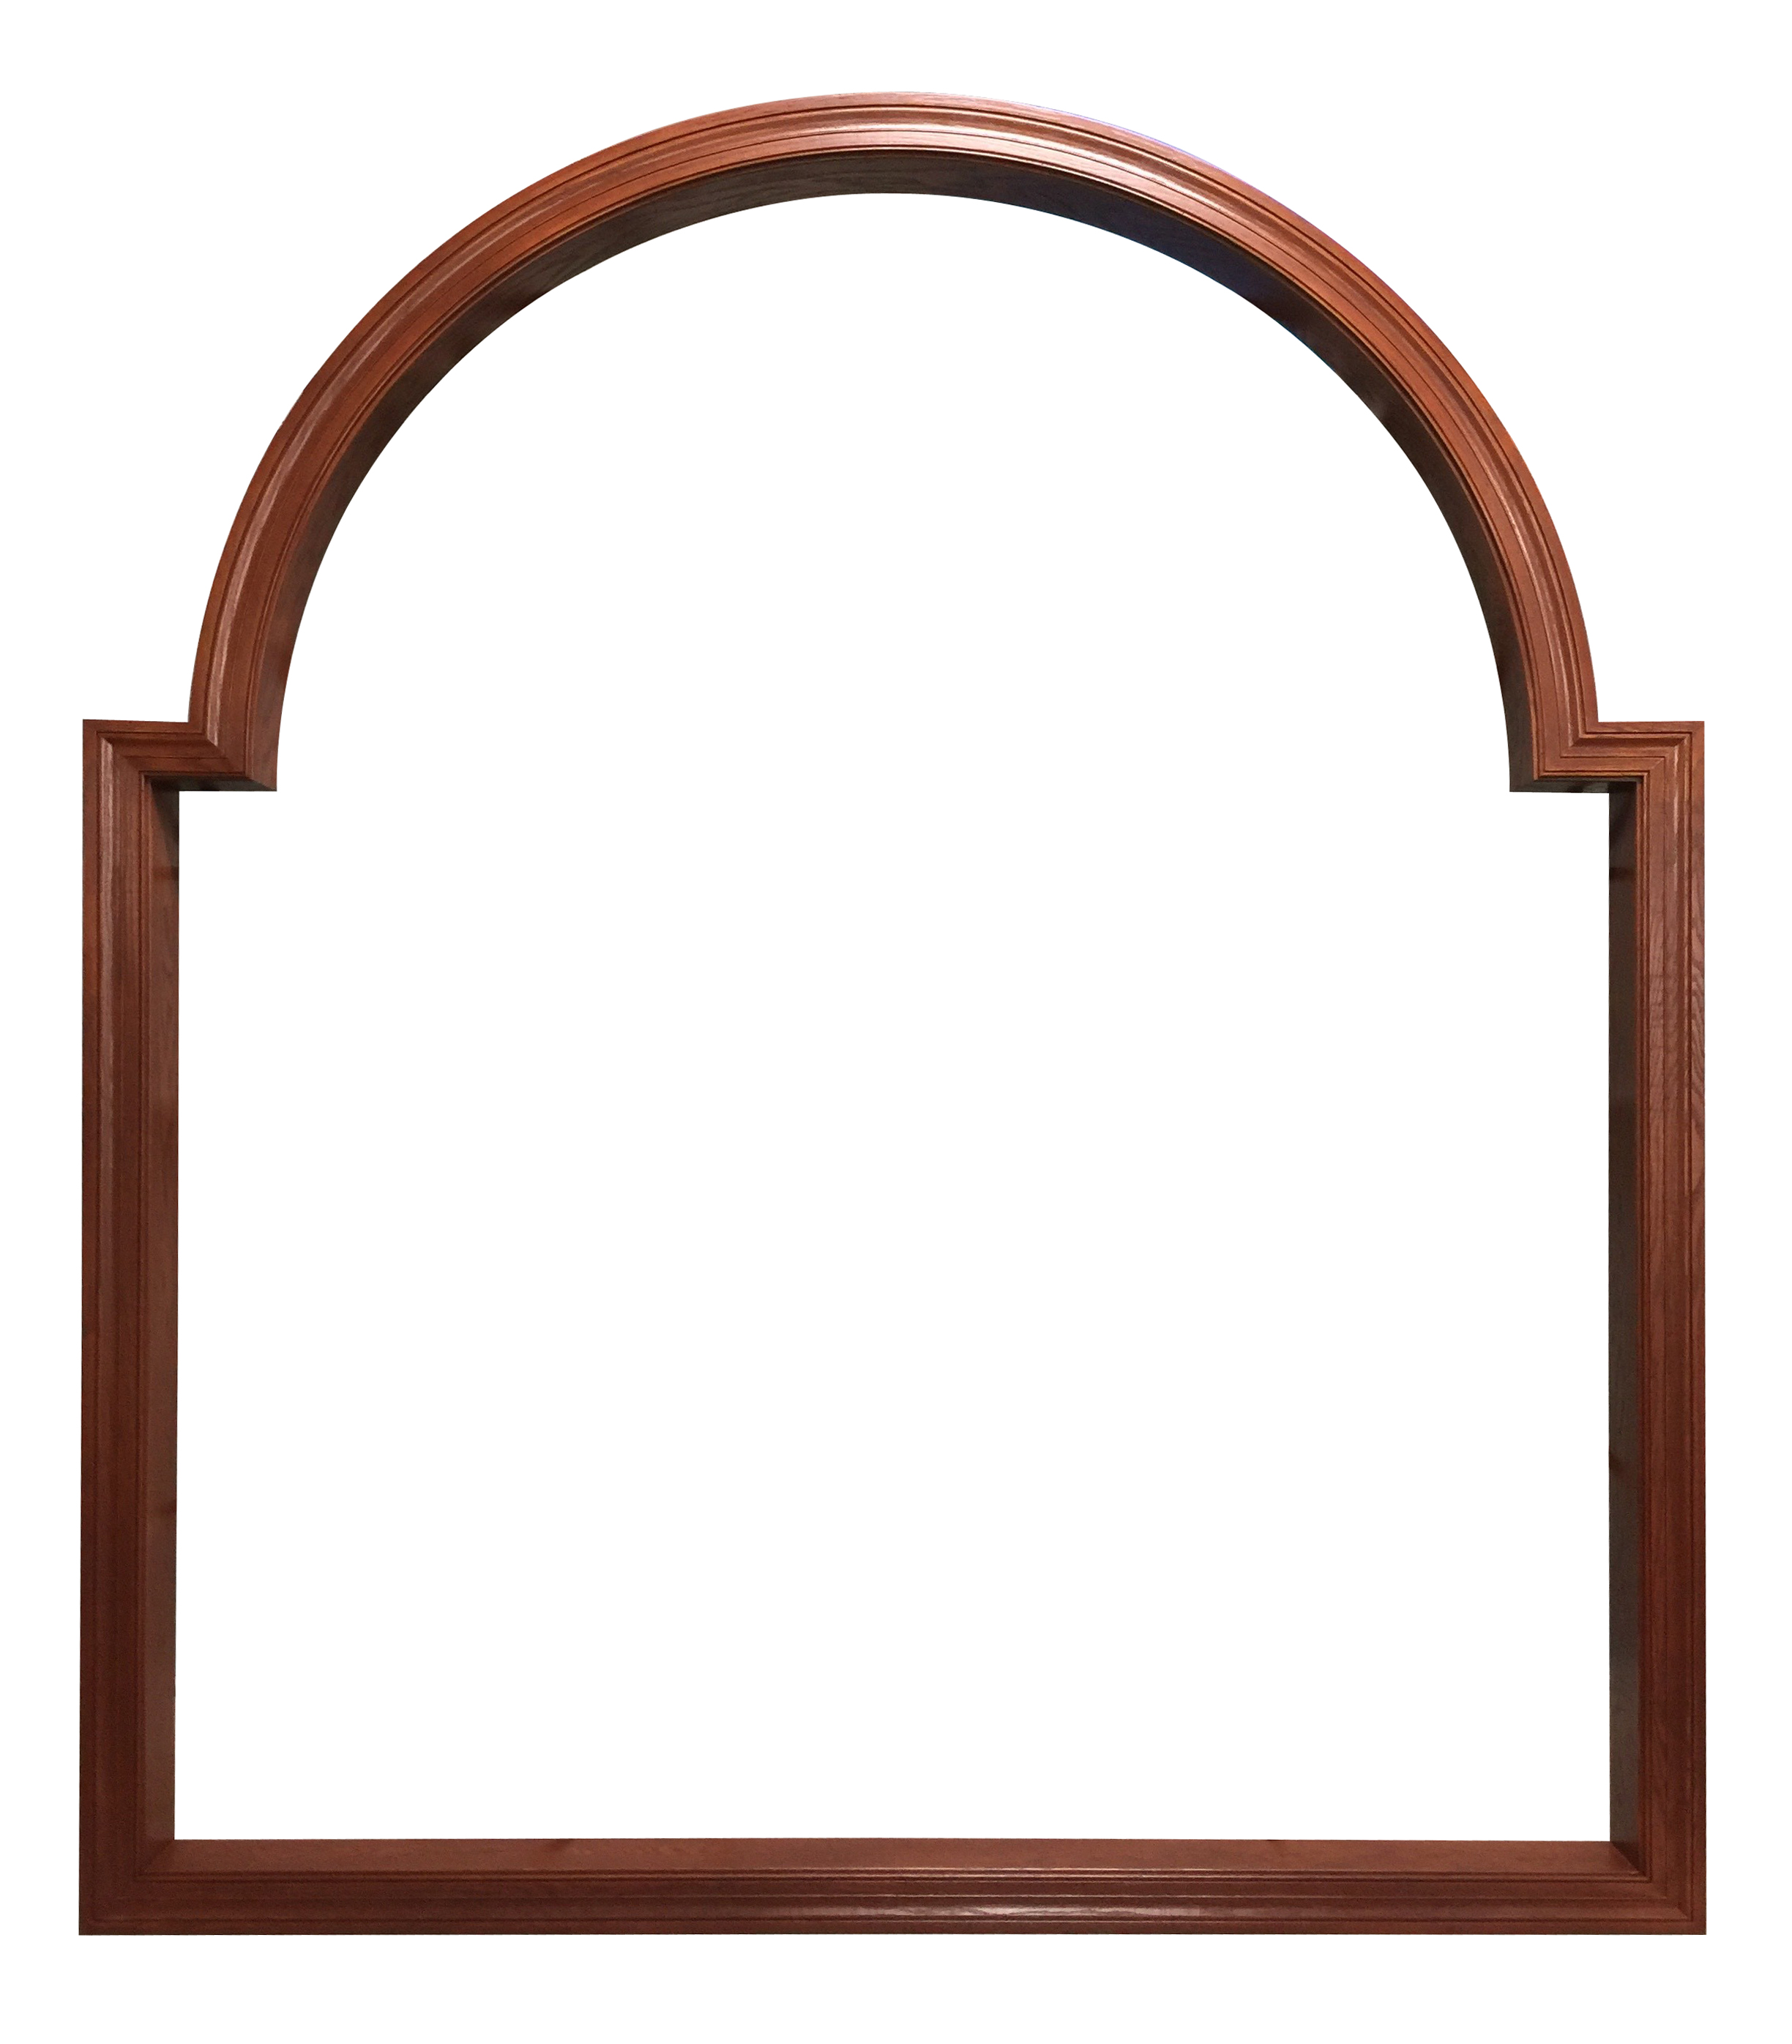 Arched Window Frame Clipart.